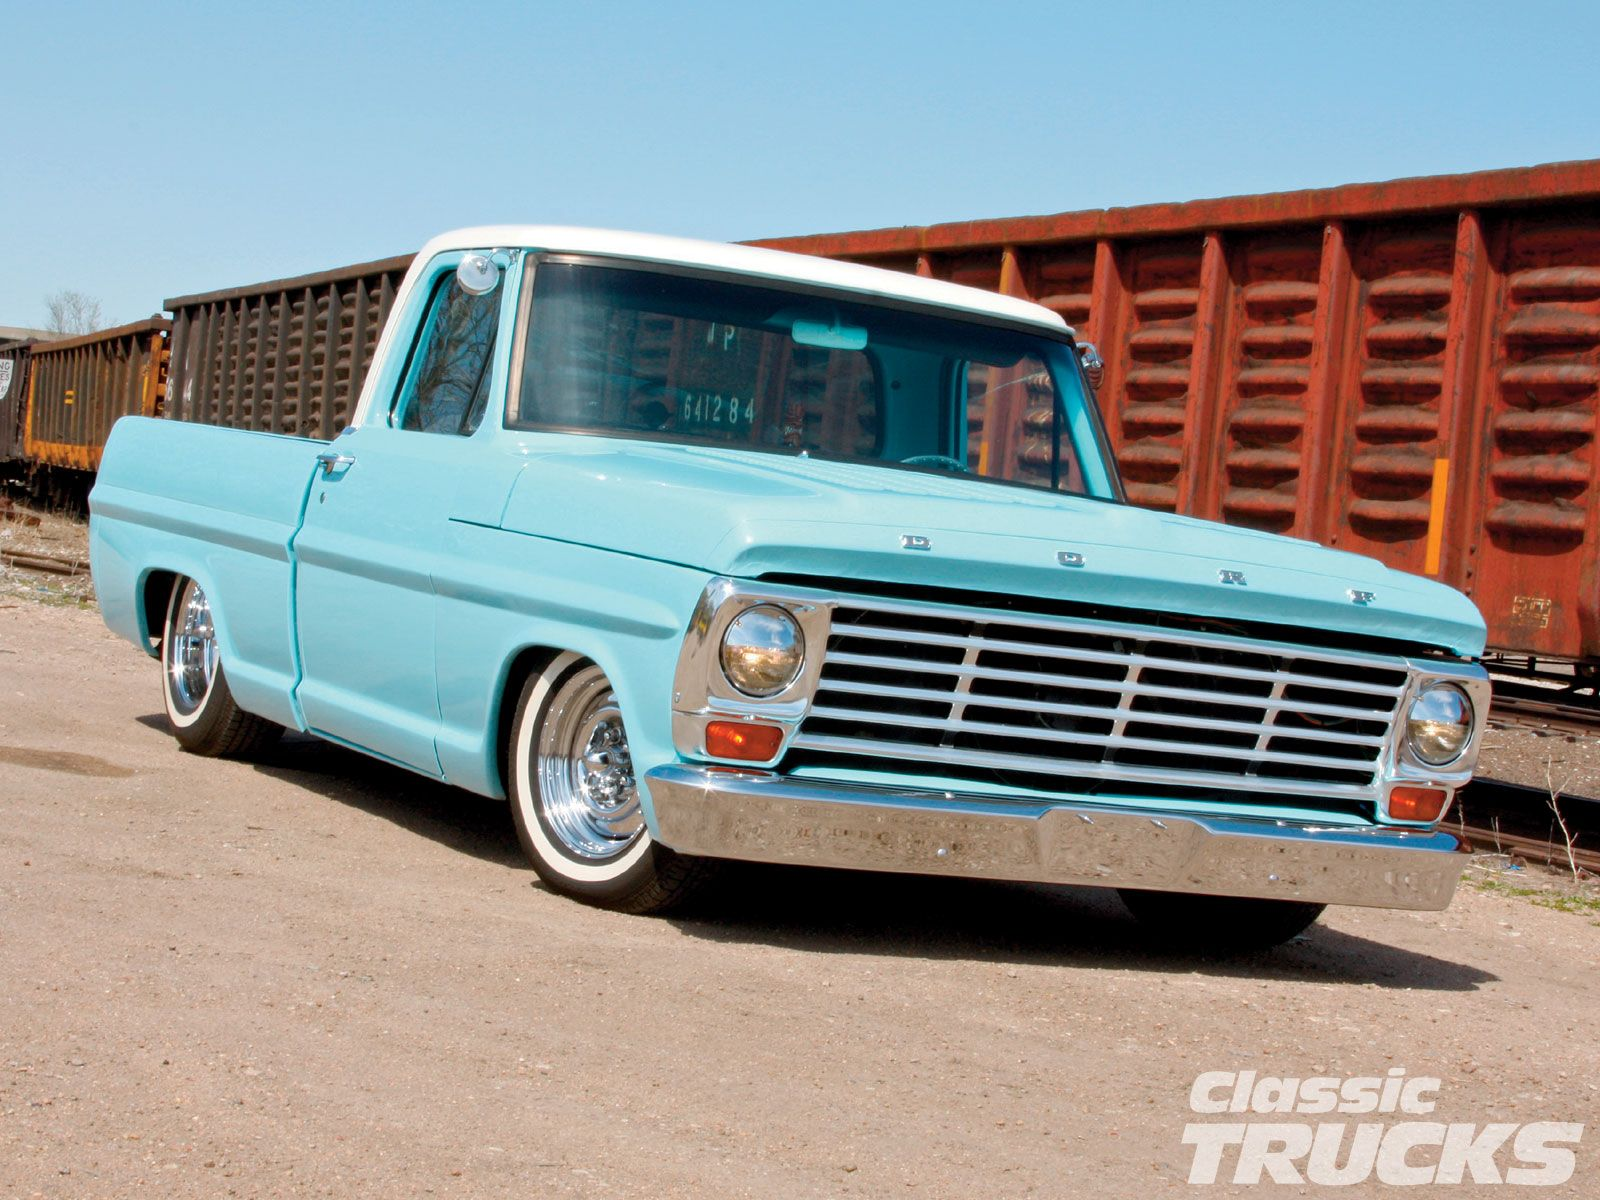 1955 ford f100 trucks for sale used cars on oodle autos post - 1967 Ford F100